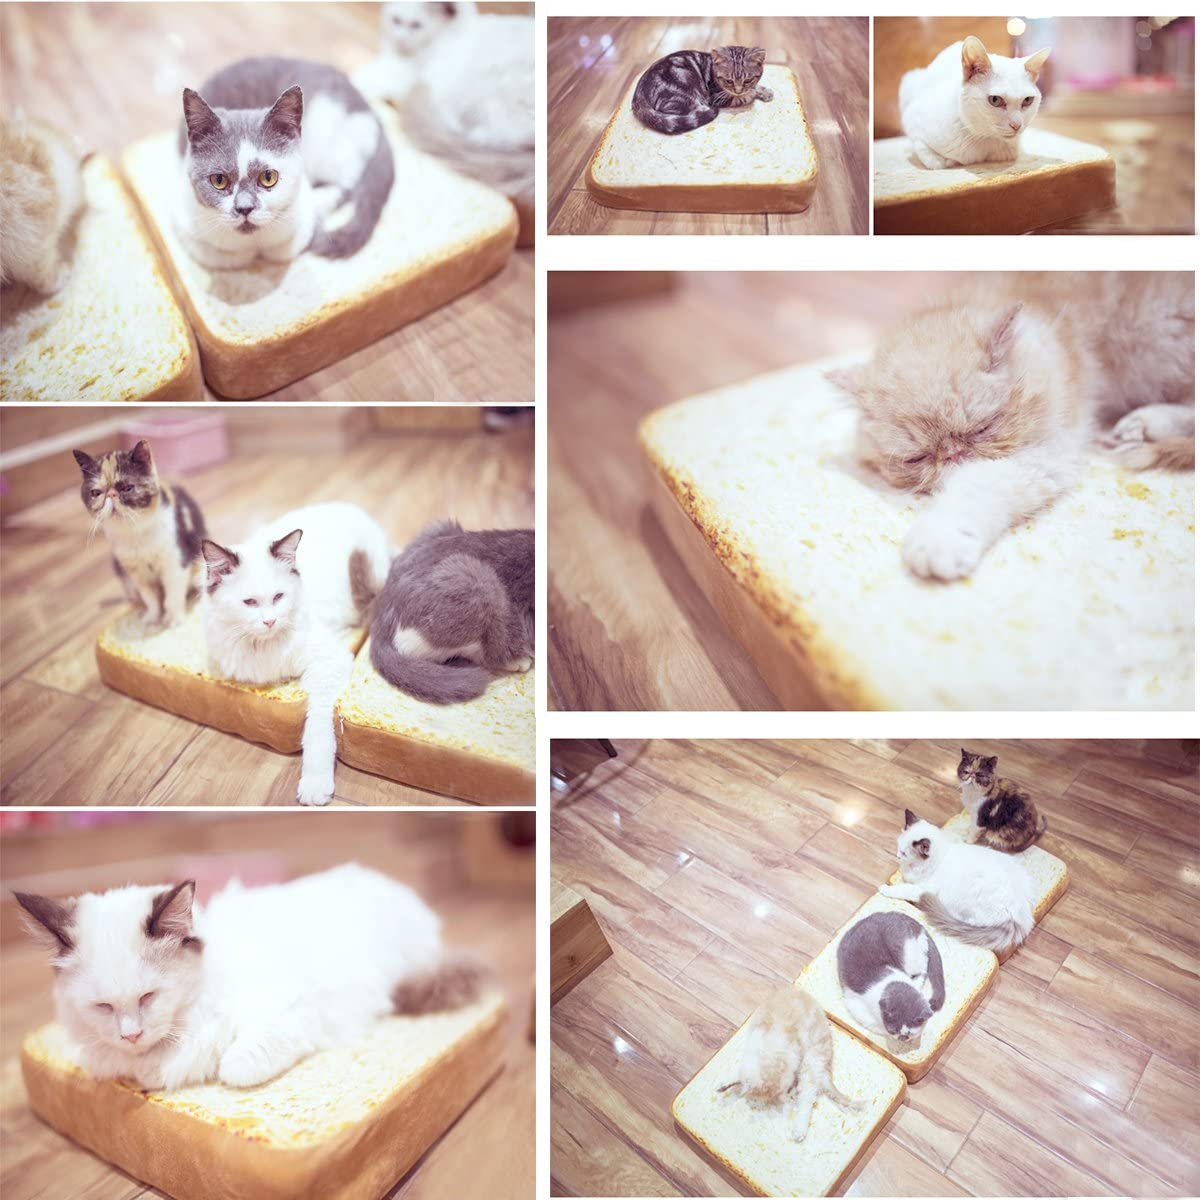 SanSiDo Cat Bed Mat Pet Bed Mattress Creative Toast Bread Foam Cushion for Cute Animal Catty and Doggy Sleeping Playing Resting